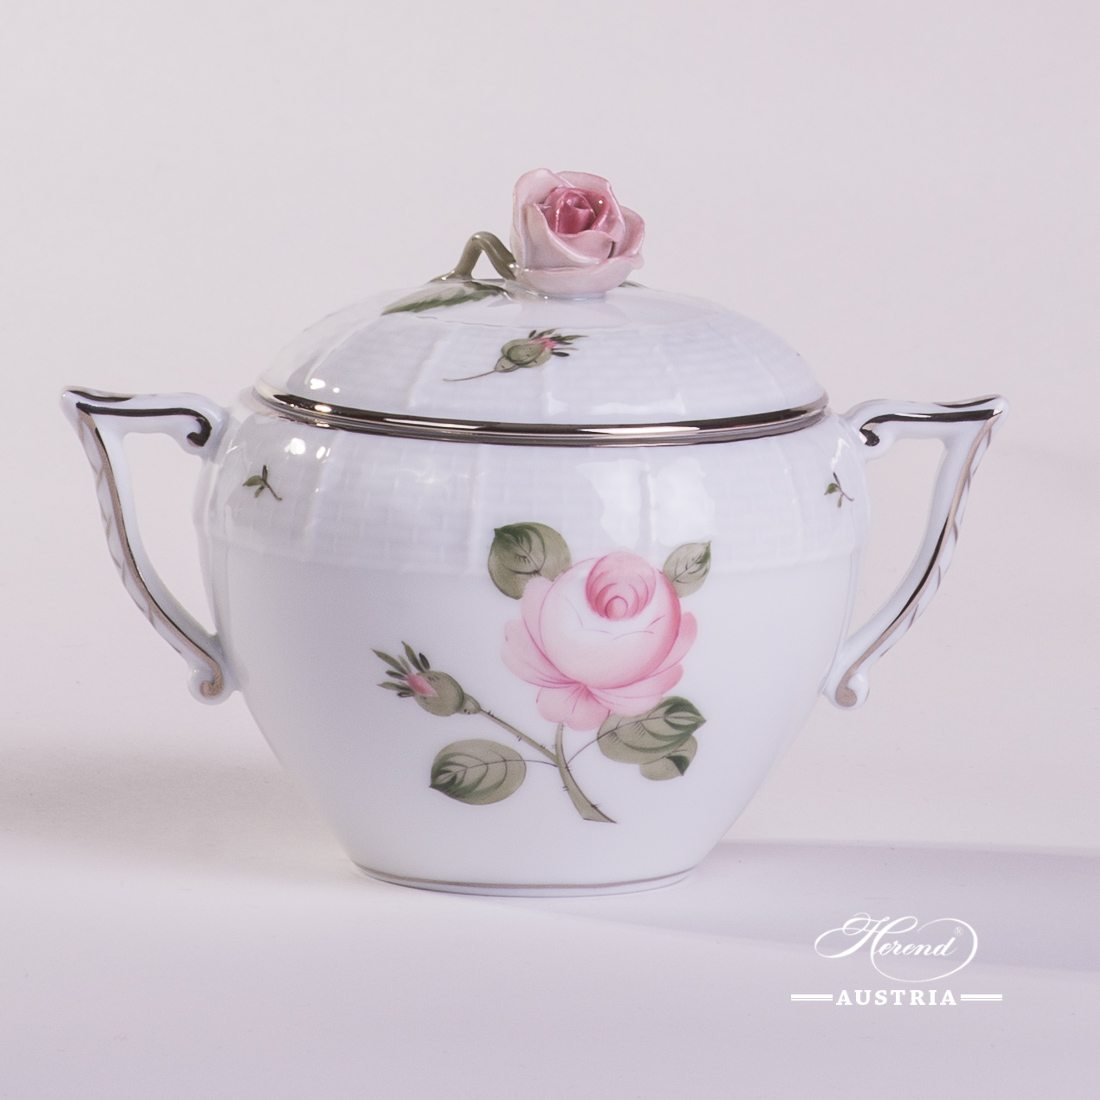 Sugar Basin w. Rose Knob 472-0-09 VGR-PT Vienna Rose Grand w. Platinum pattern. Herend fine china. Hand painted tableware